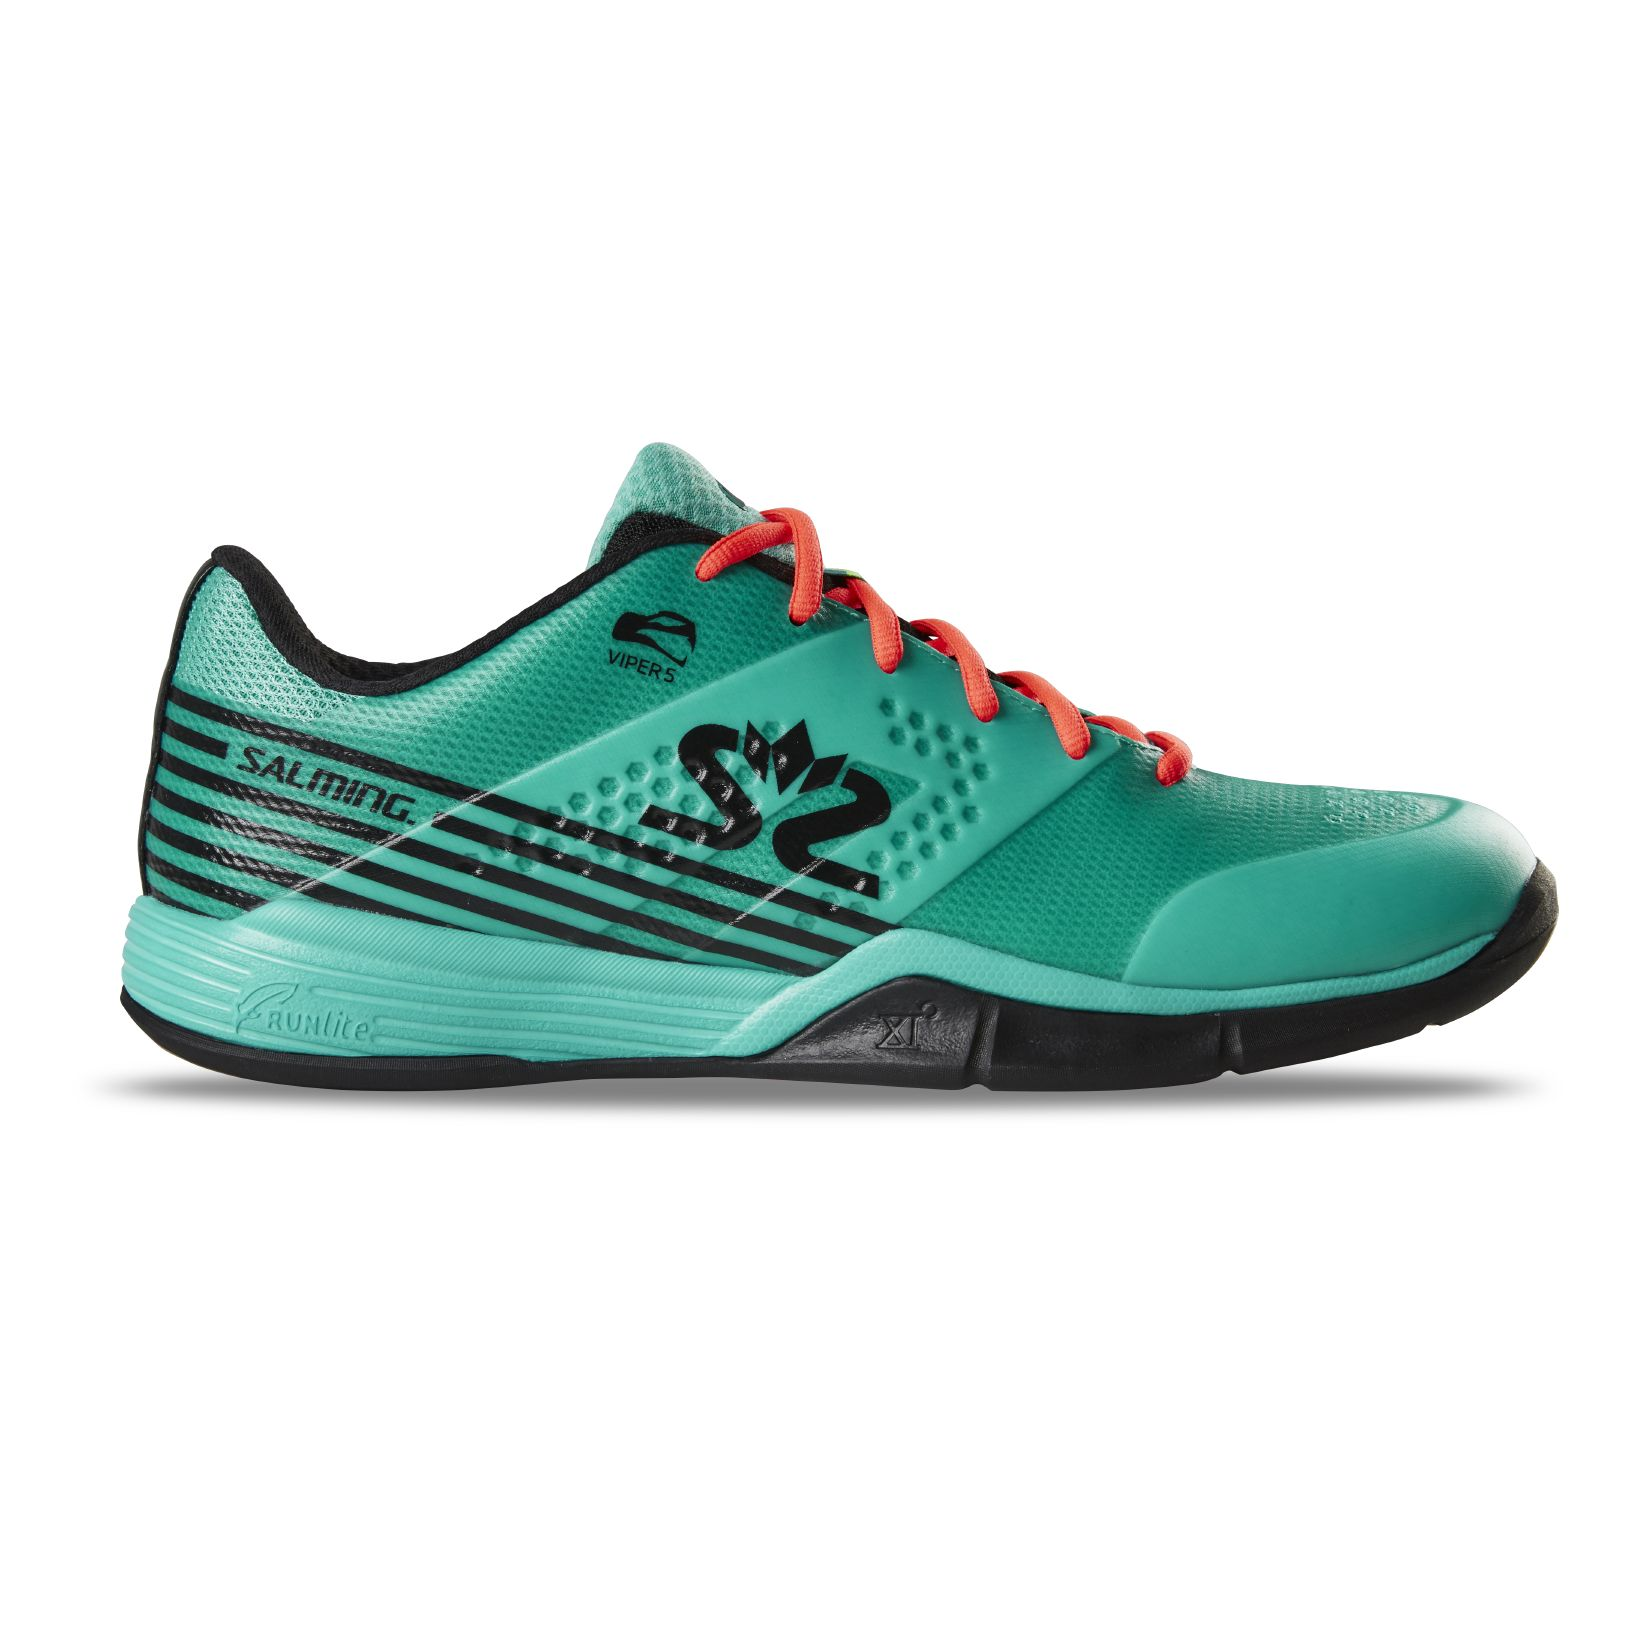 Salming Viper 5 Shoe Men Turquoise/Black 12,5 UK - 48 2/3 EUR - 31,5 cm